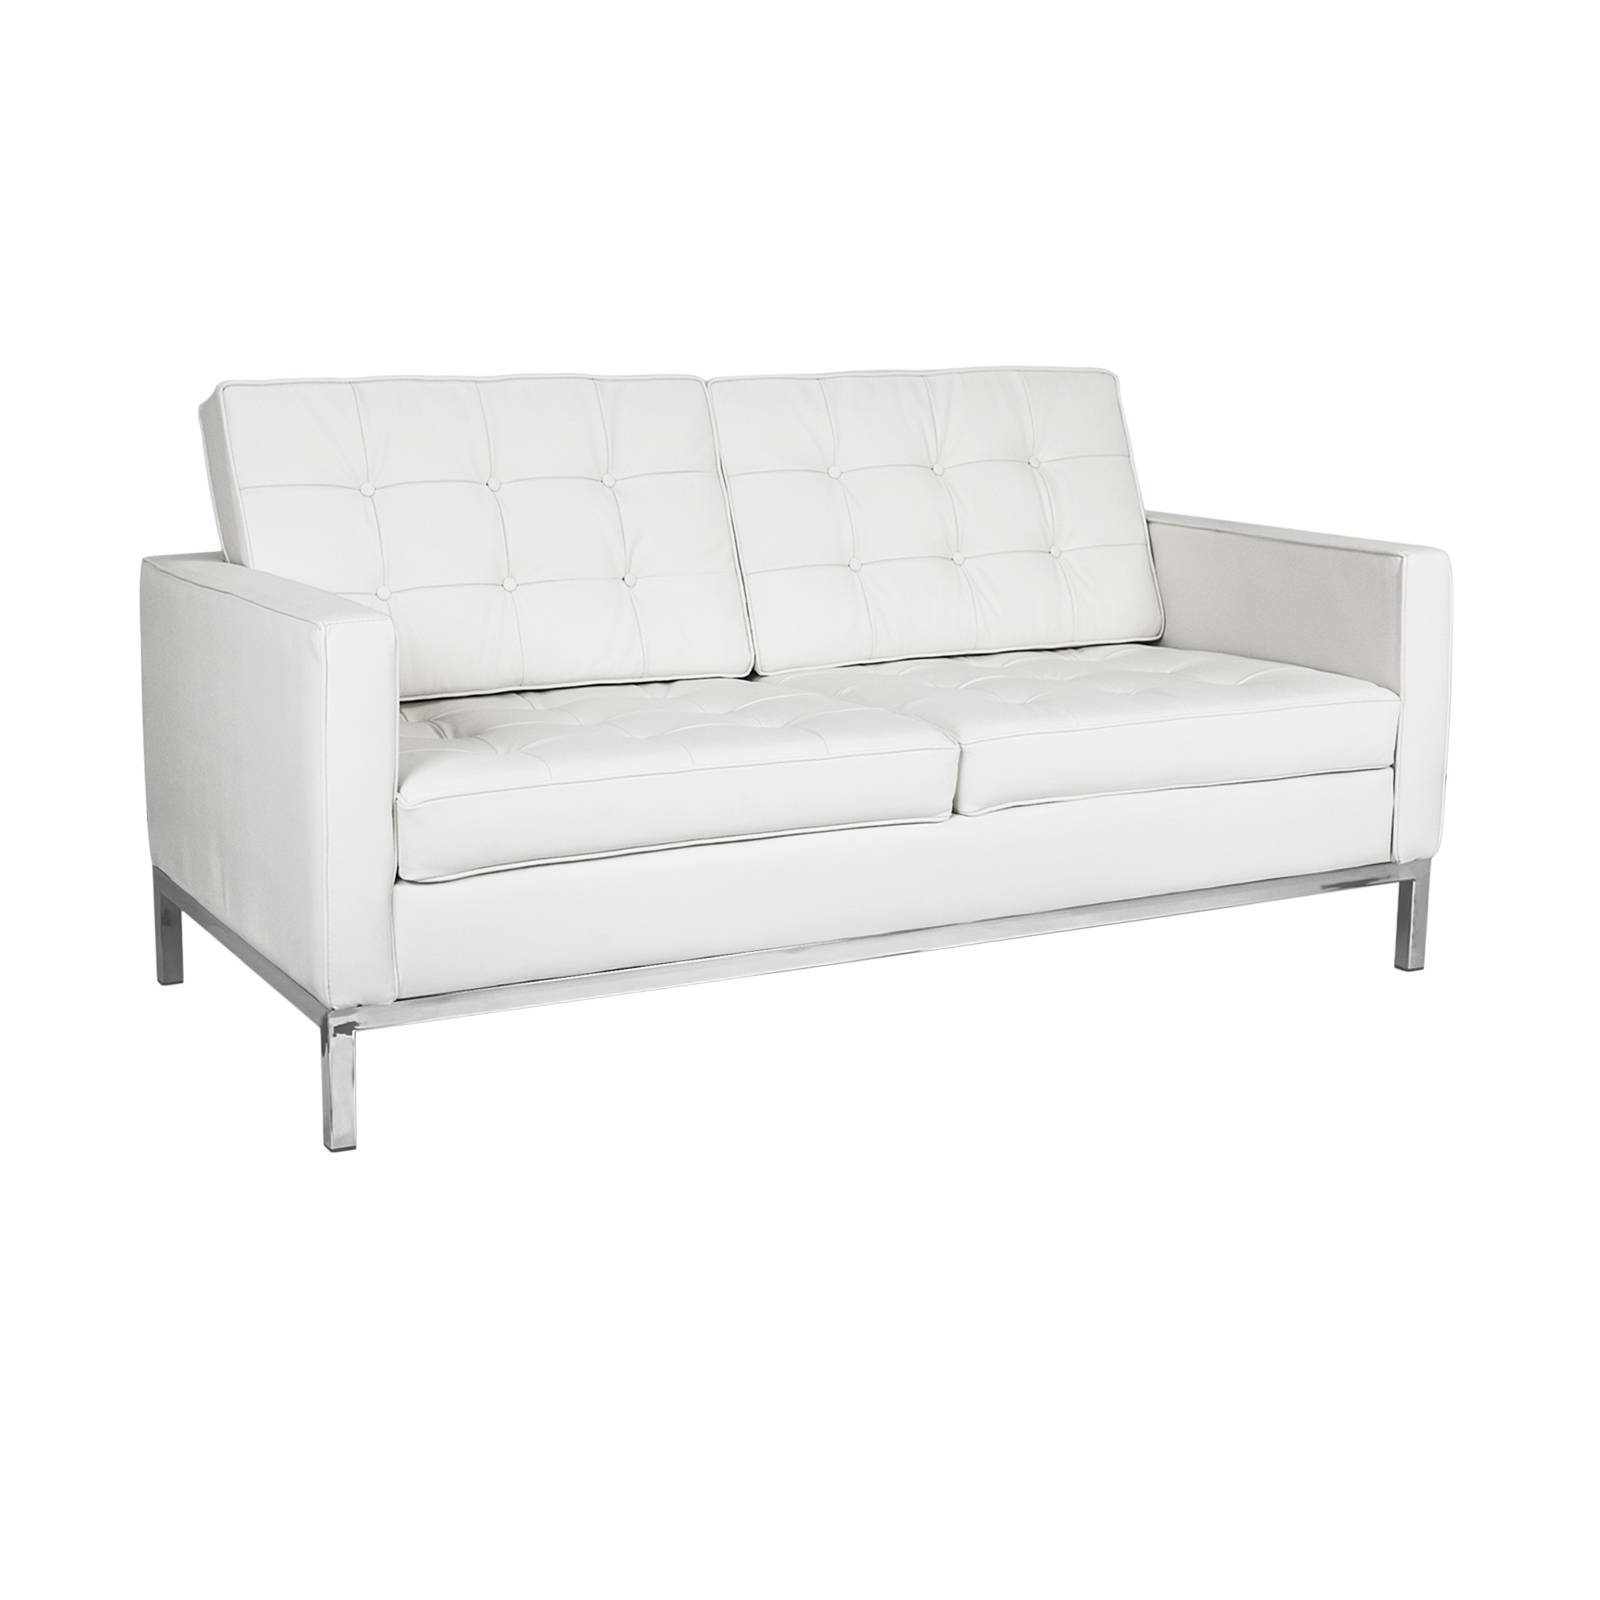 Florence Knoll Loveseat Rentals | Event Furniture Rental in Florence Sofas and Loveseats (Image 3 of 25)